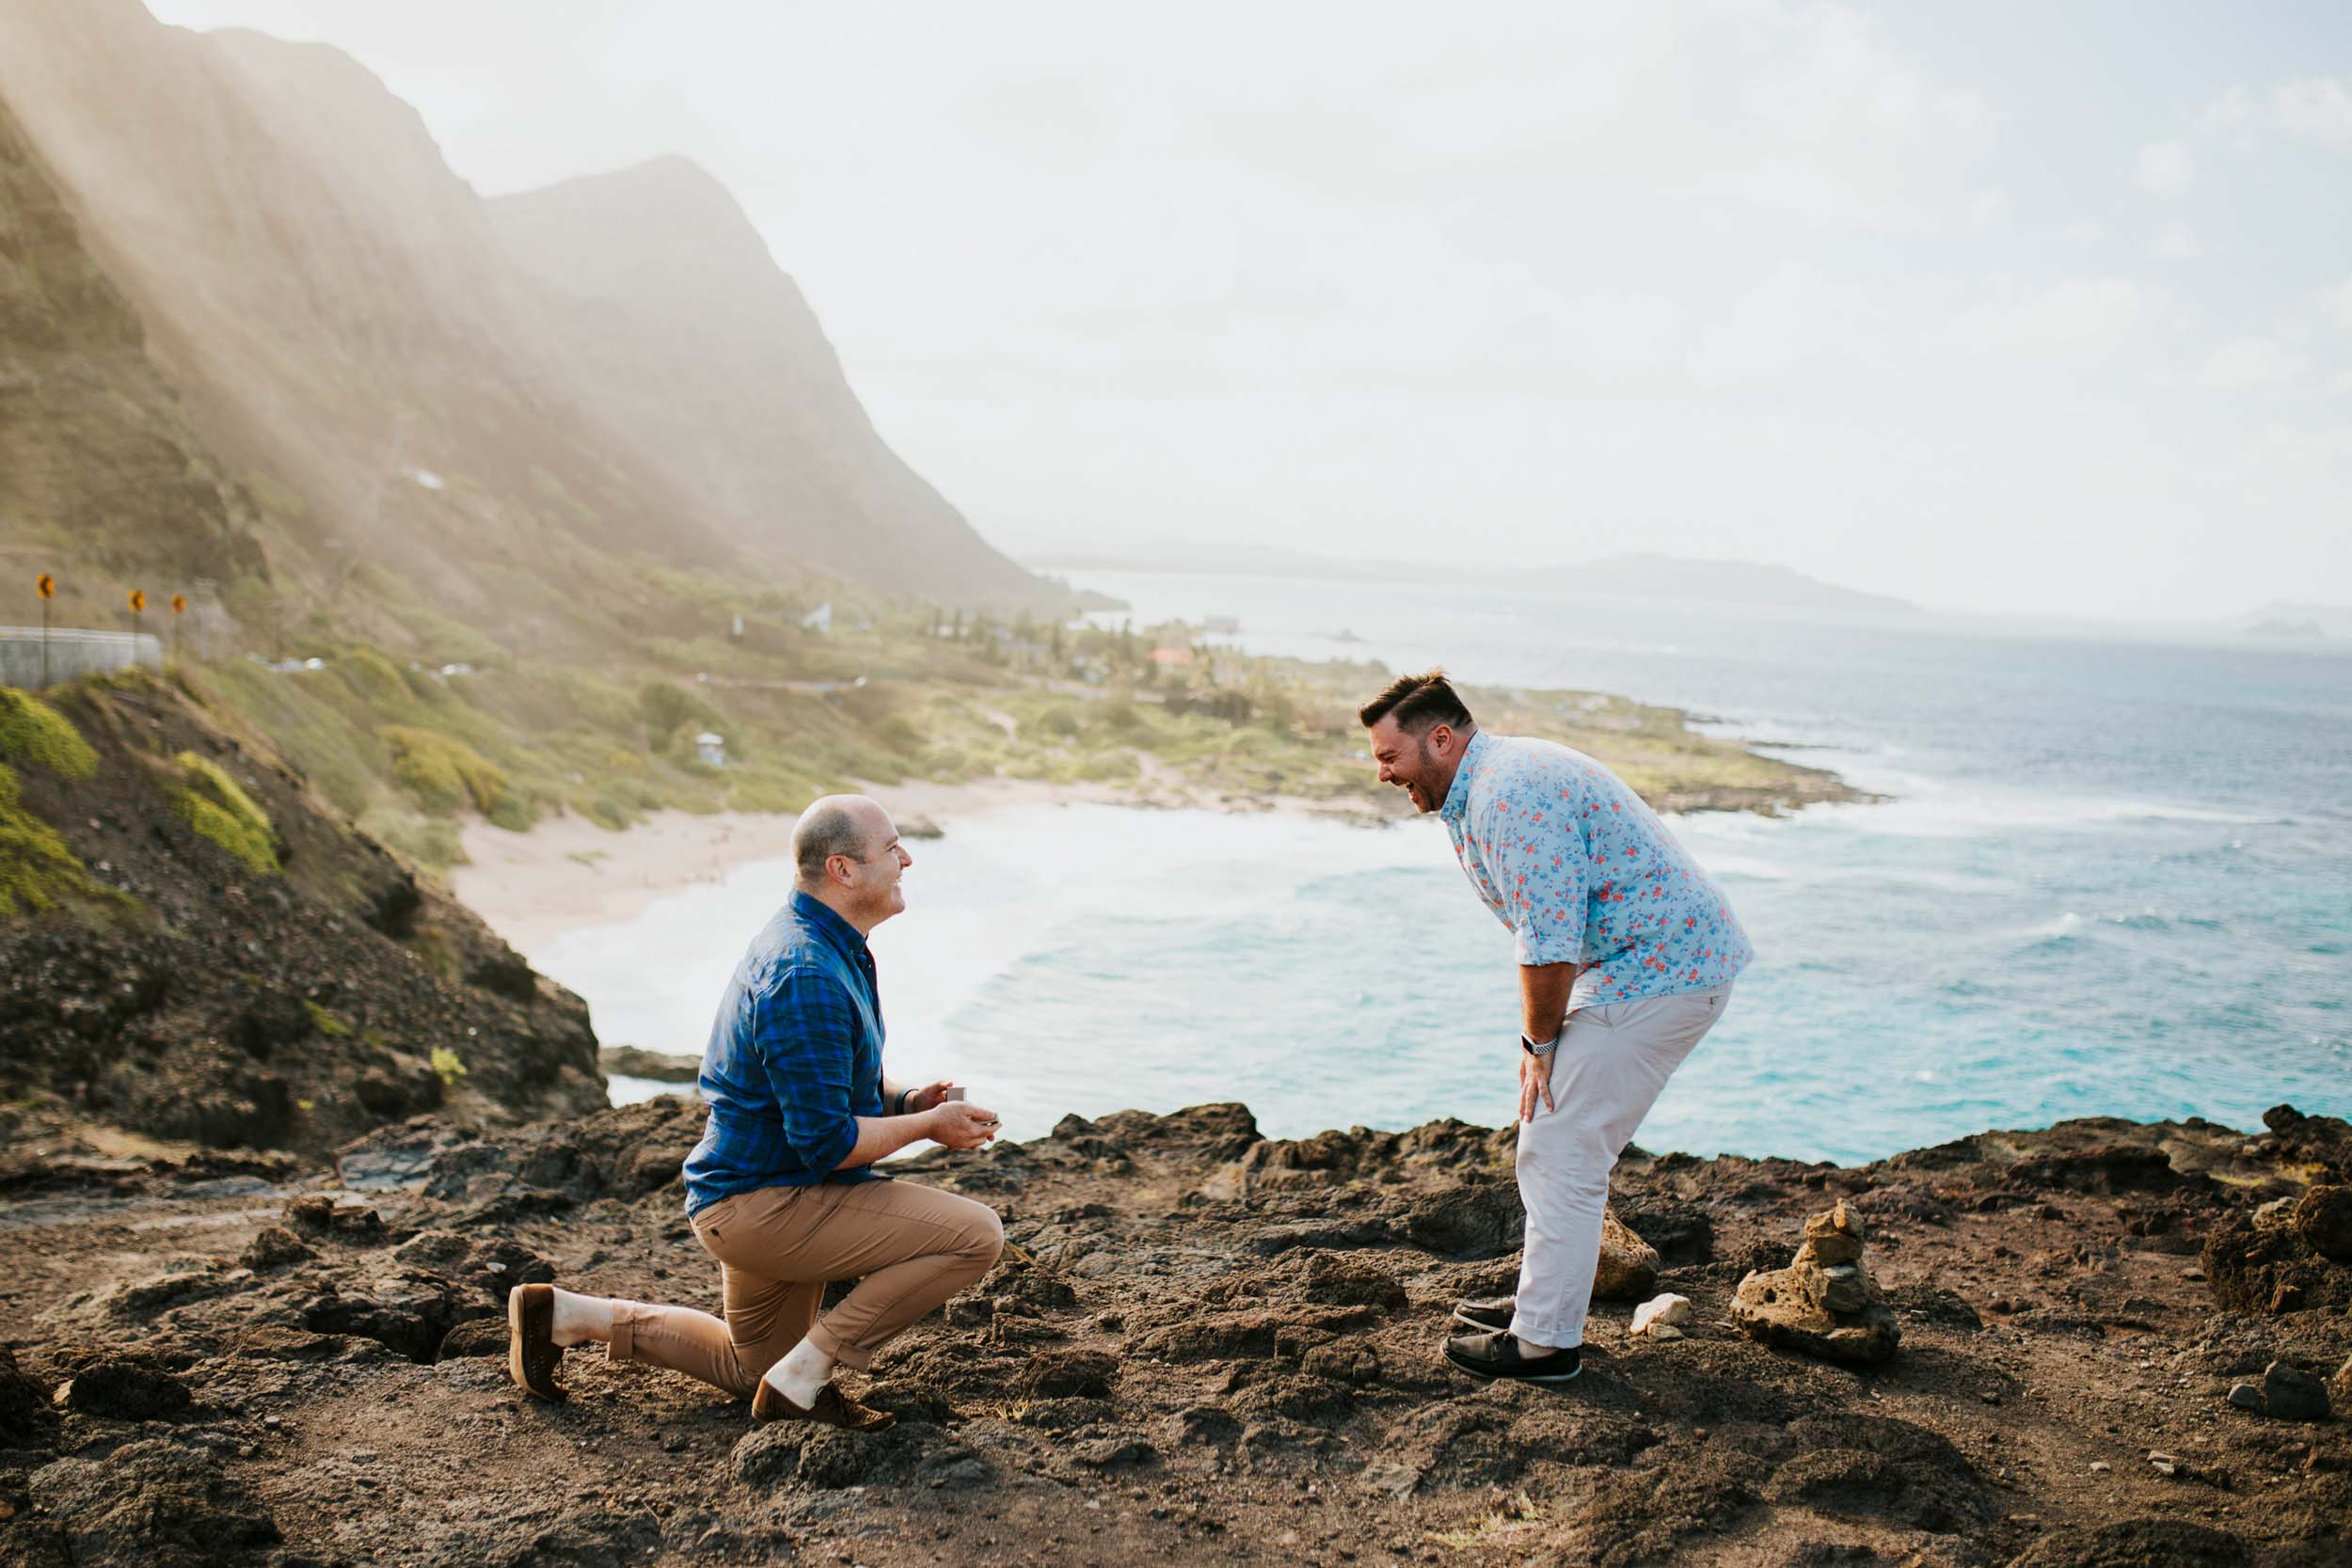 A Honolulu Beach Proposal and the Magic of Spontaneity